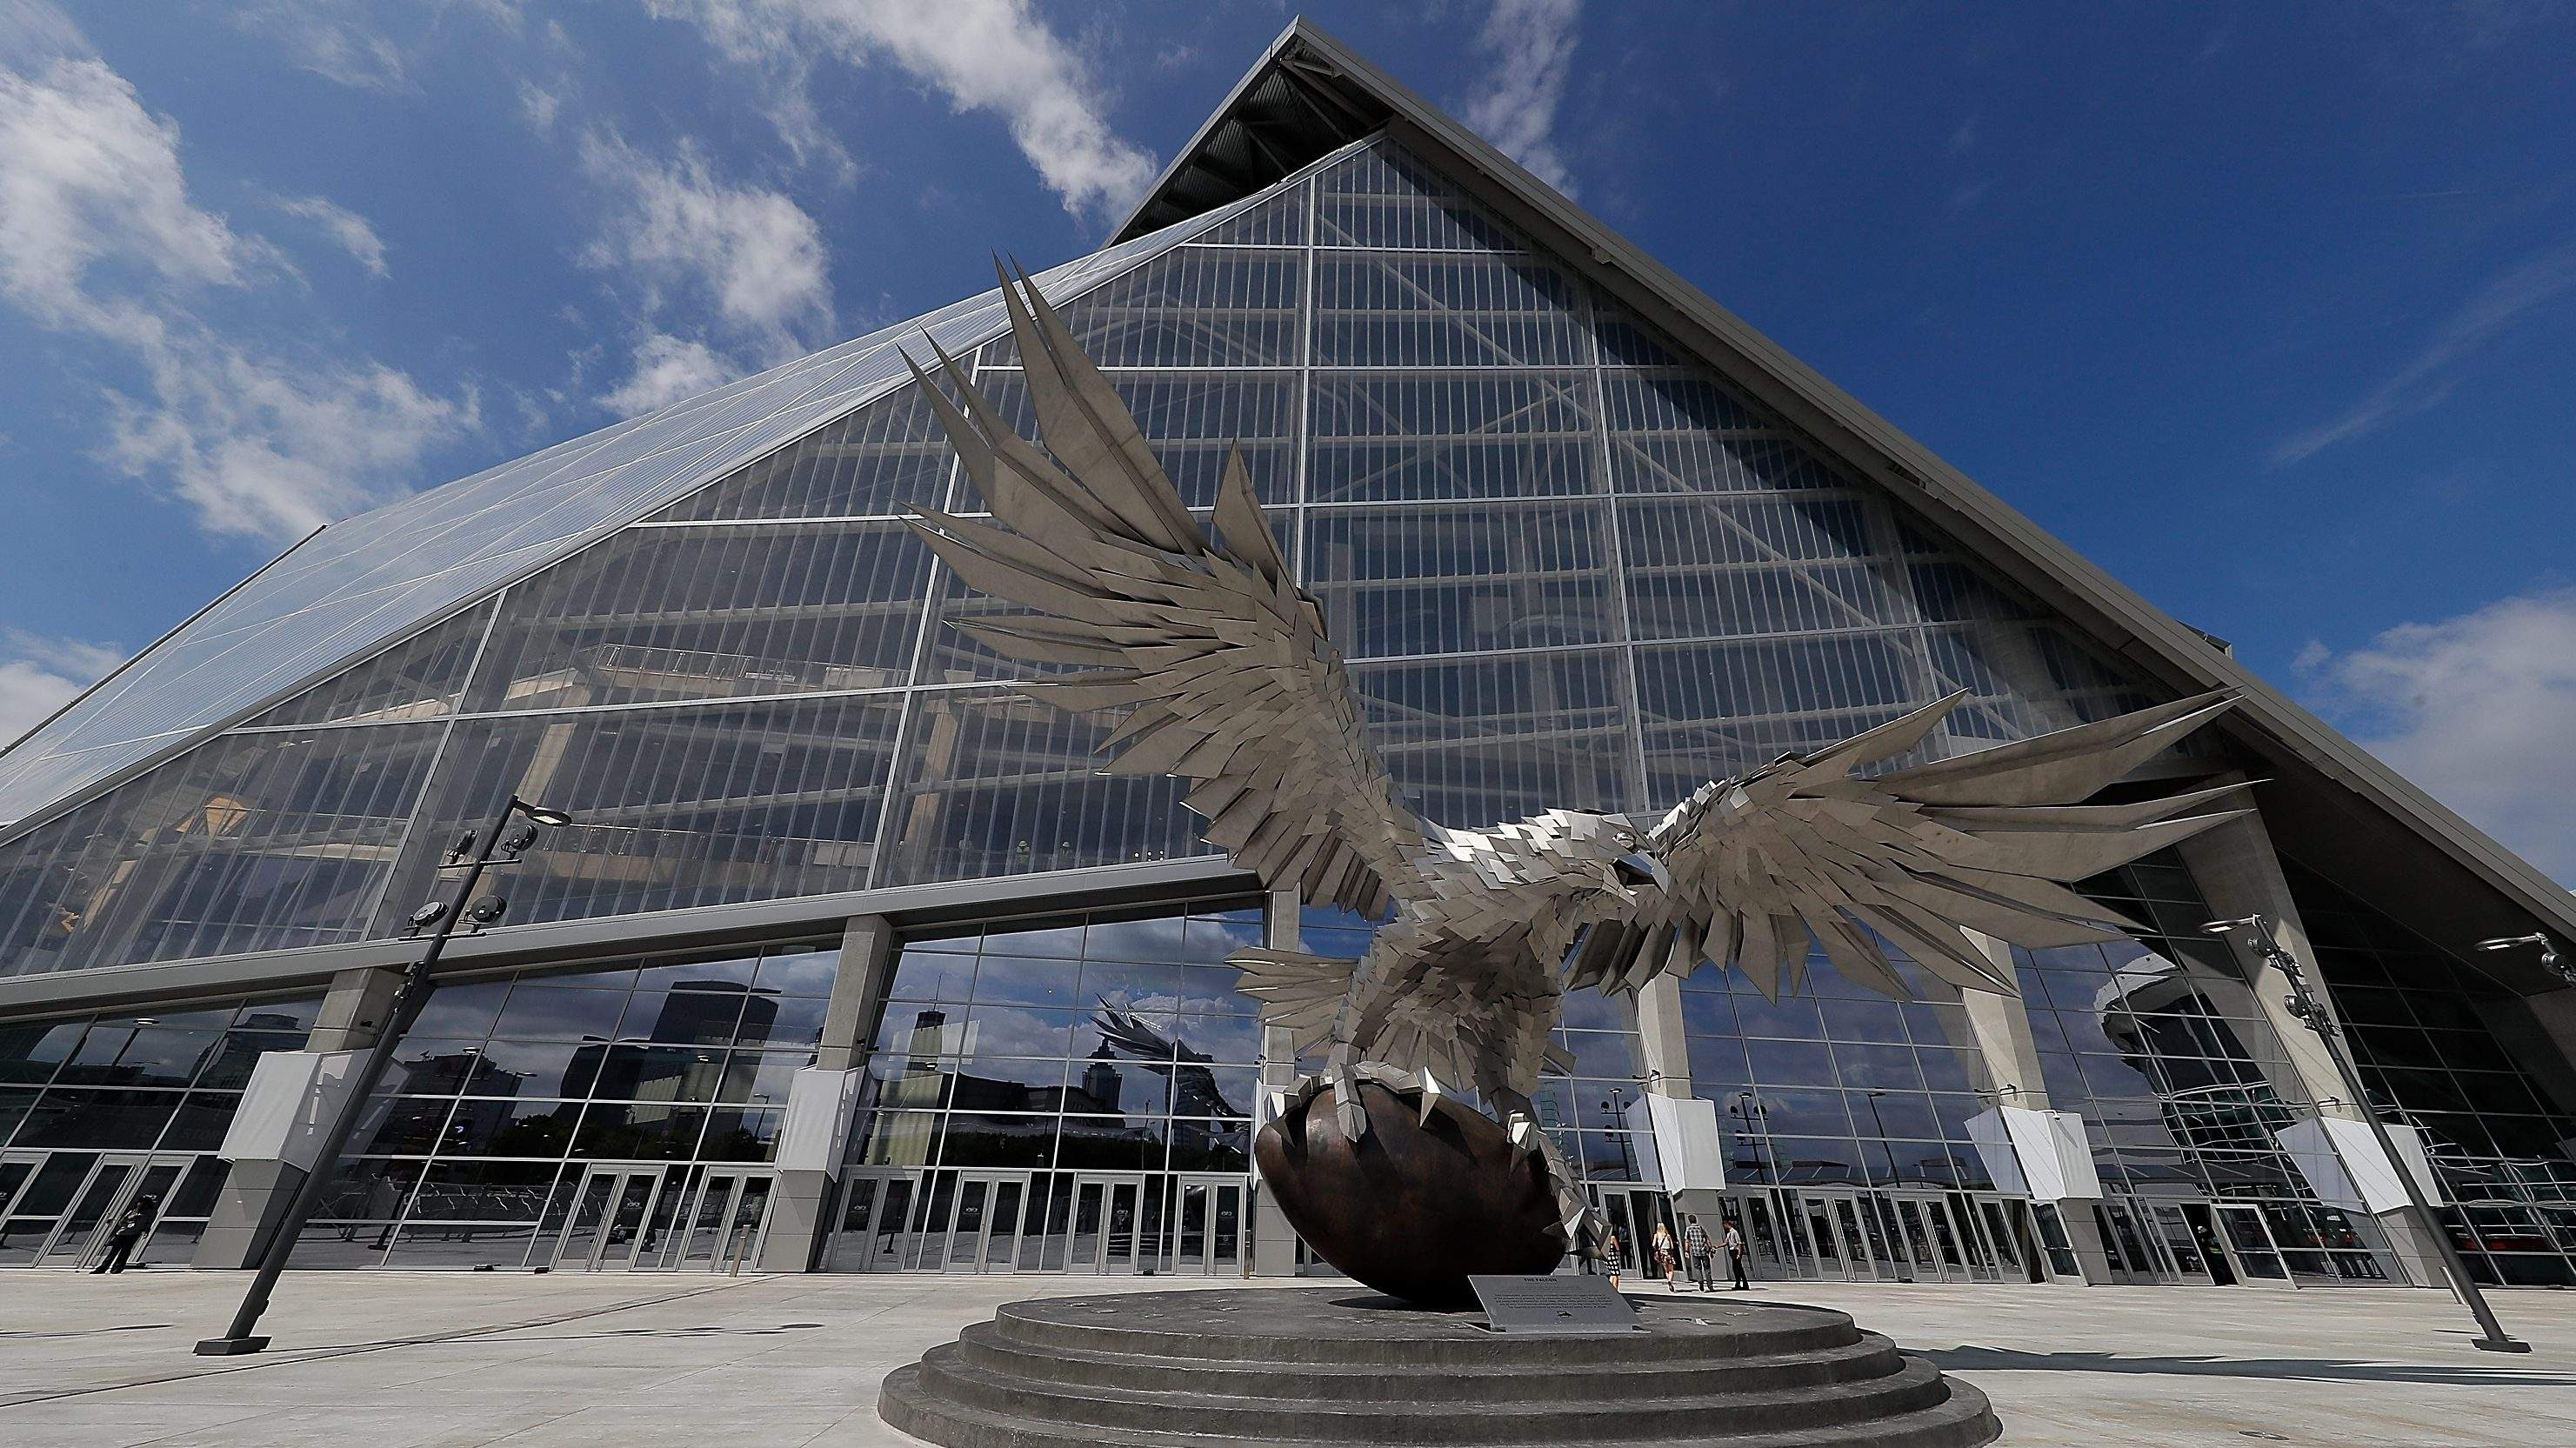 Super Bowl 2019 In Atlanta: An Exciting Opportunity To Advertise in Super Bowl 2019 City